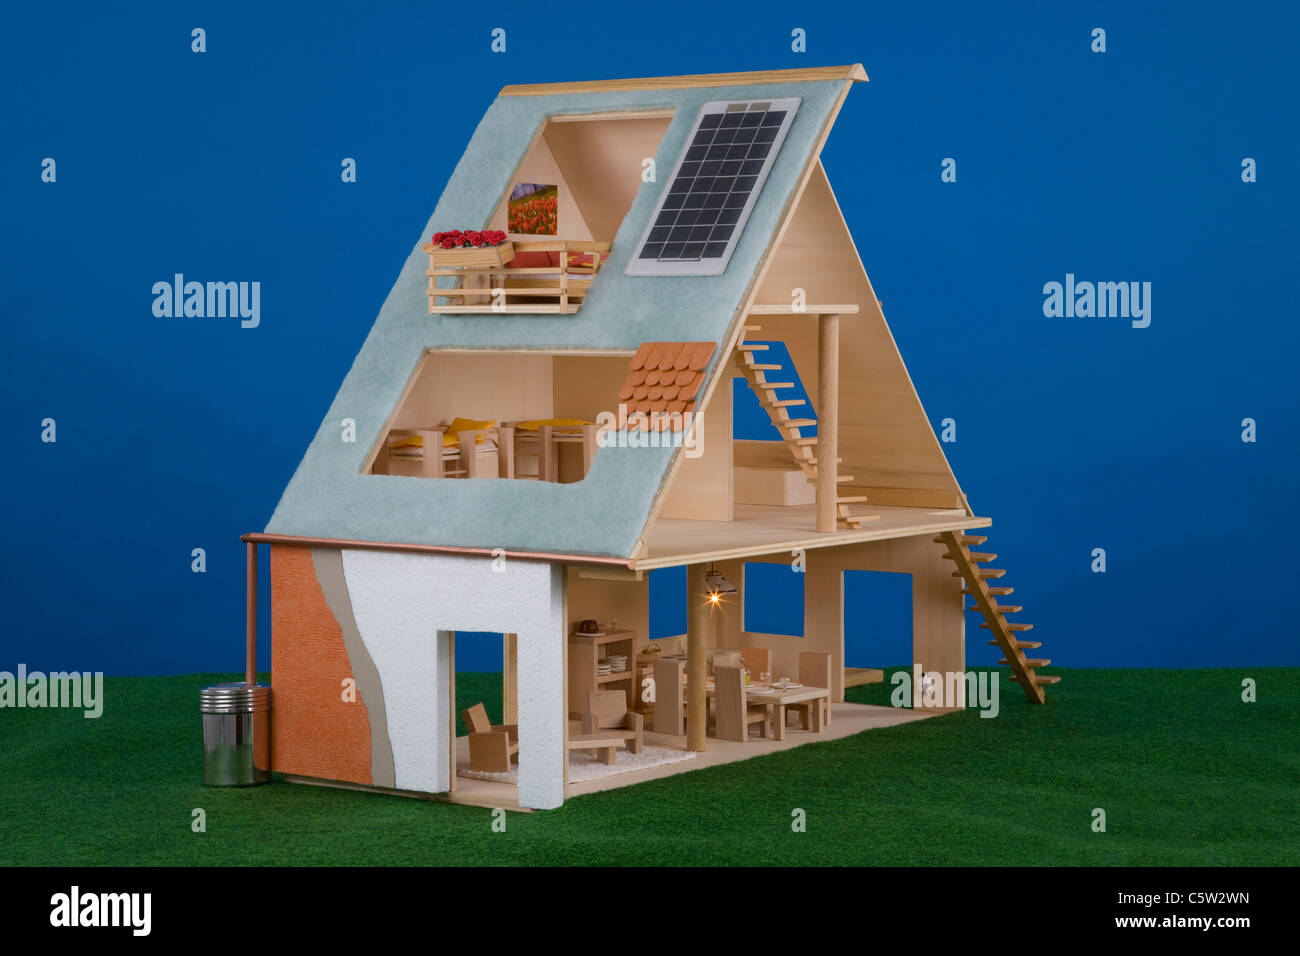 Dolls' house with solar cells on roof - Stock Image